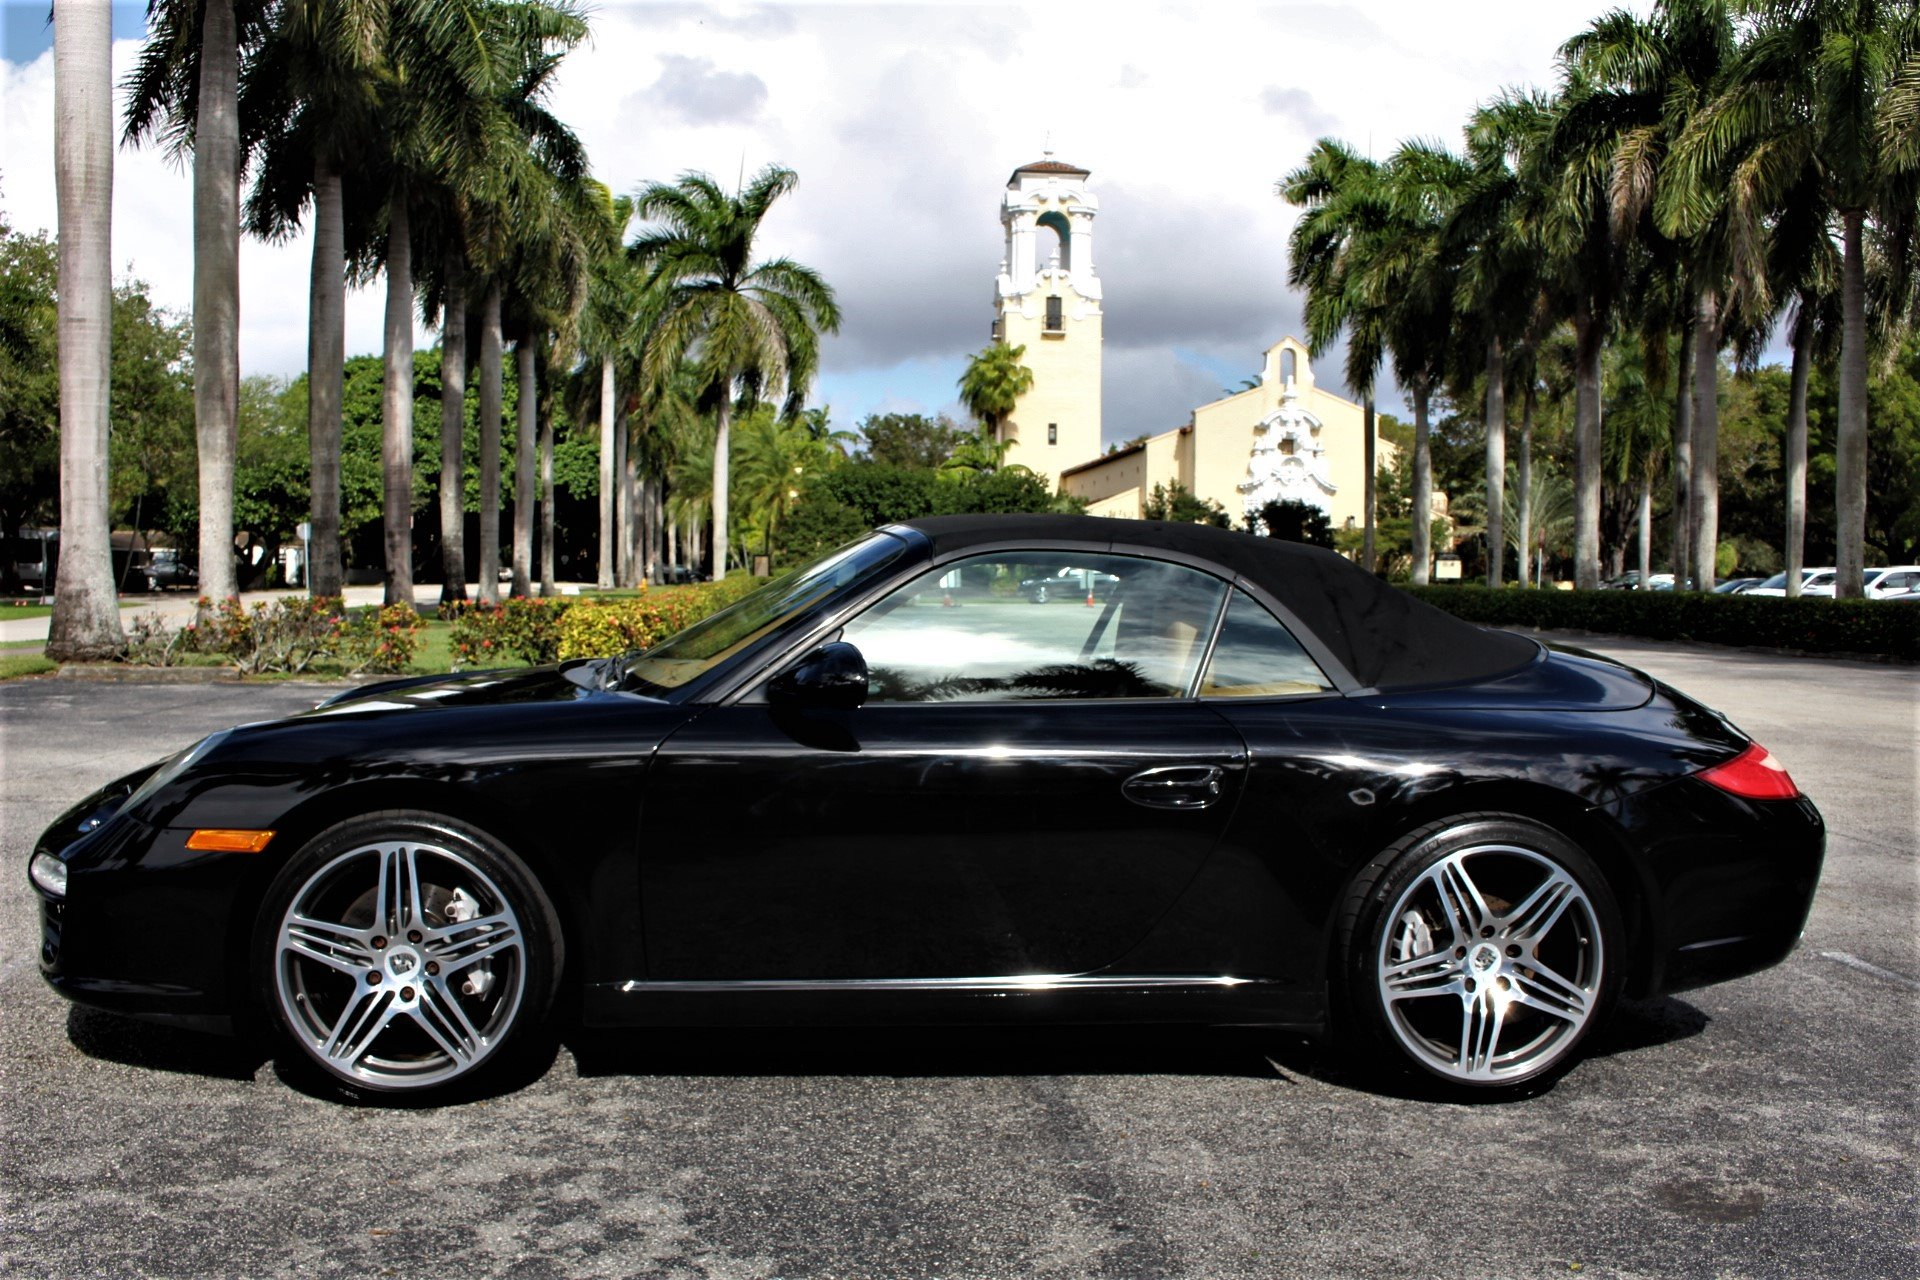 Used 2009 Porsche 911 Carrera for sale Sold at The Gables Sports Cars in Miami FL 33146 4